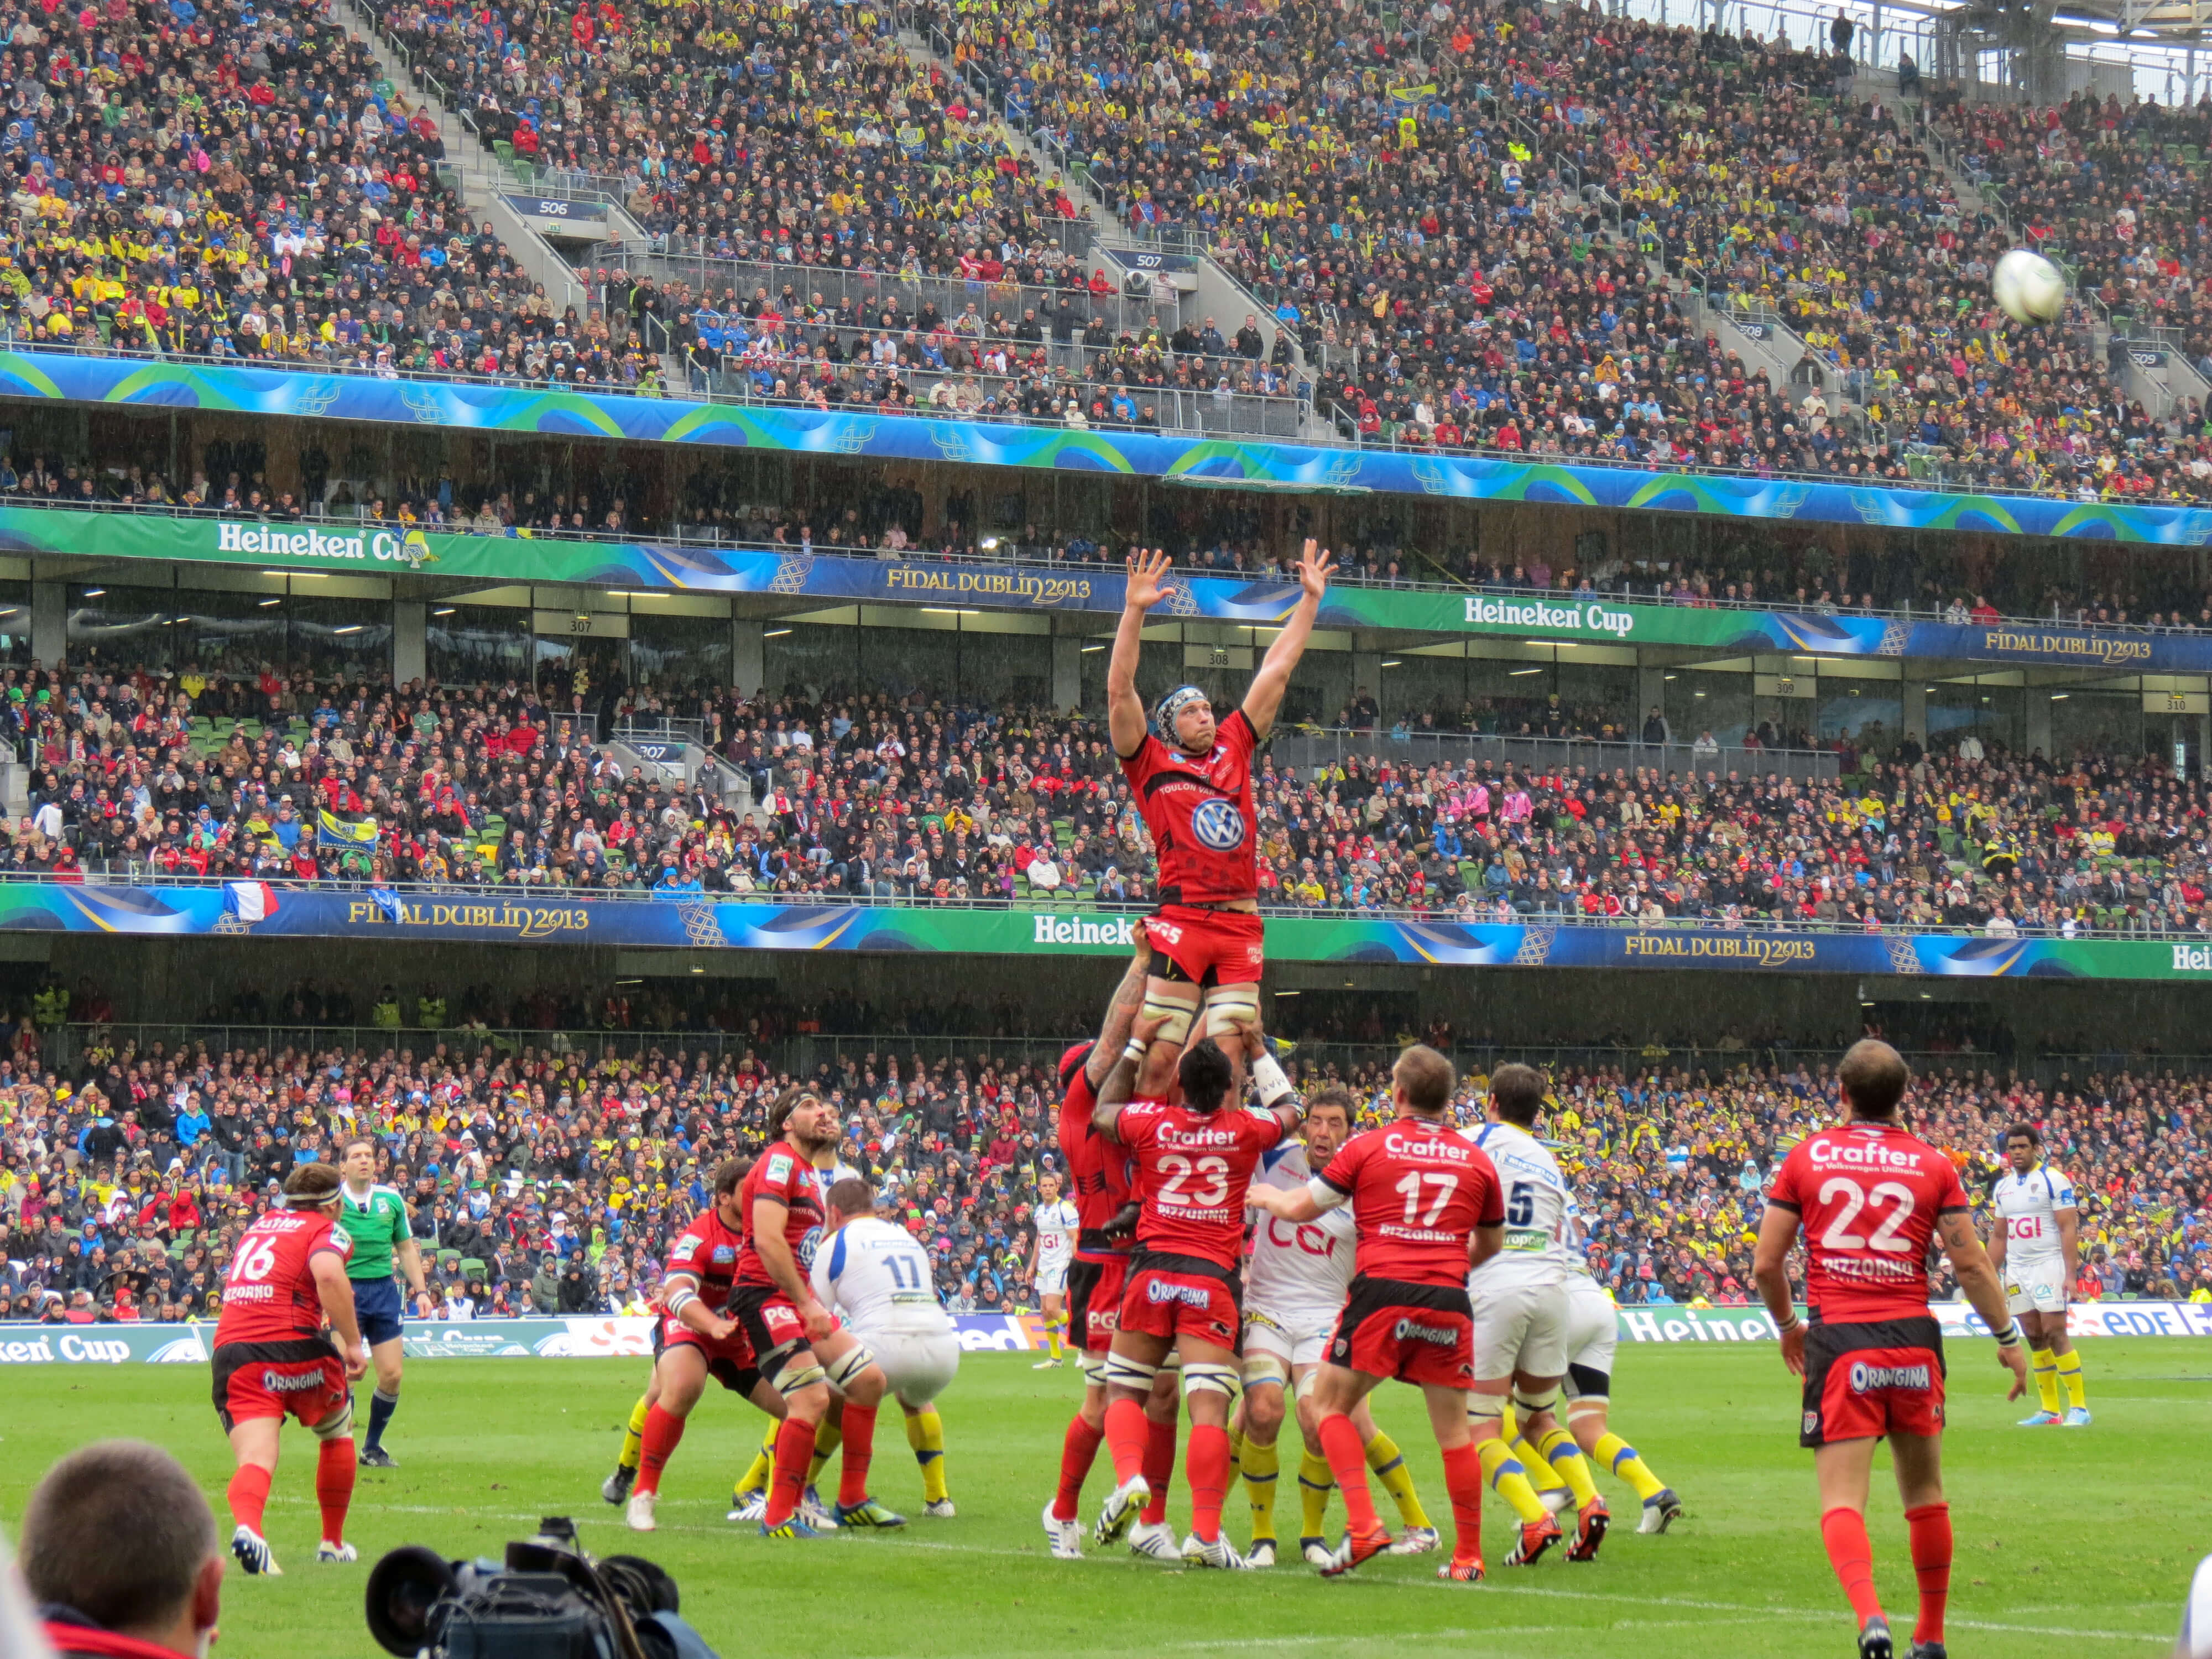 Clermont Auvergne and Toulouse contest a line out at the 2013 Heineken Cup Final. Photo credit: week ay (Flickr).